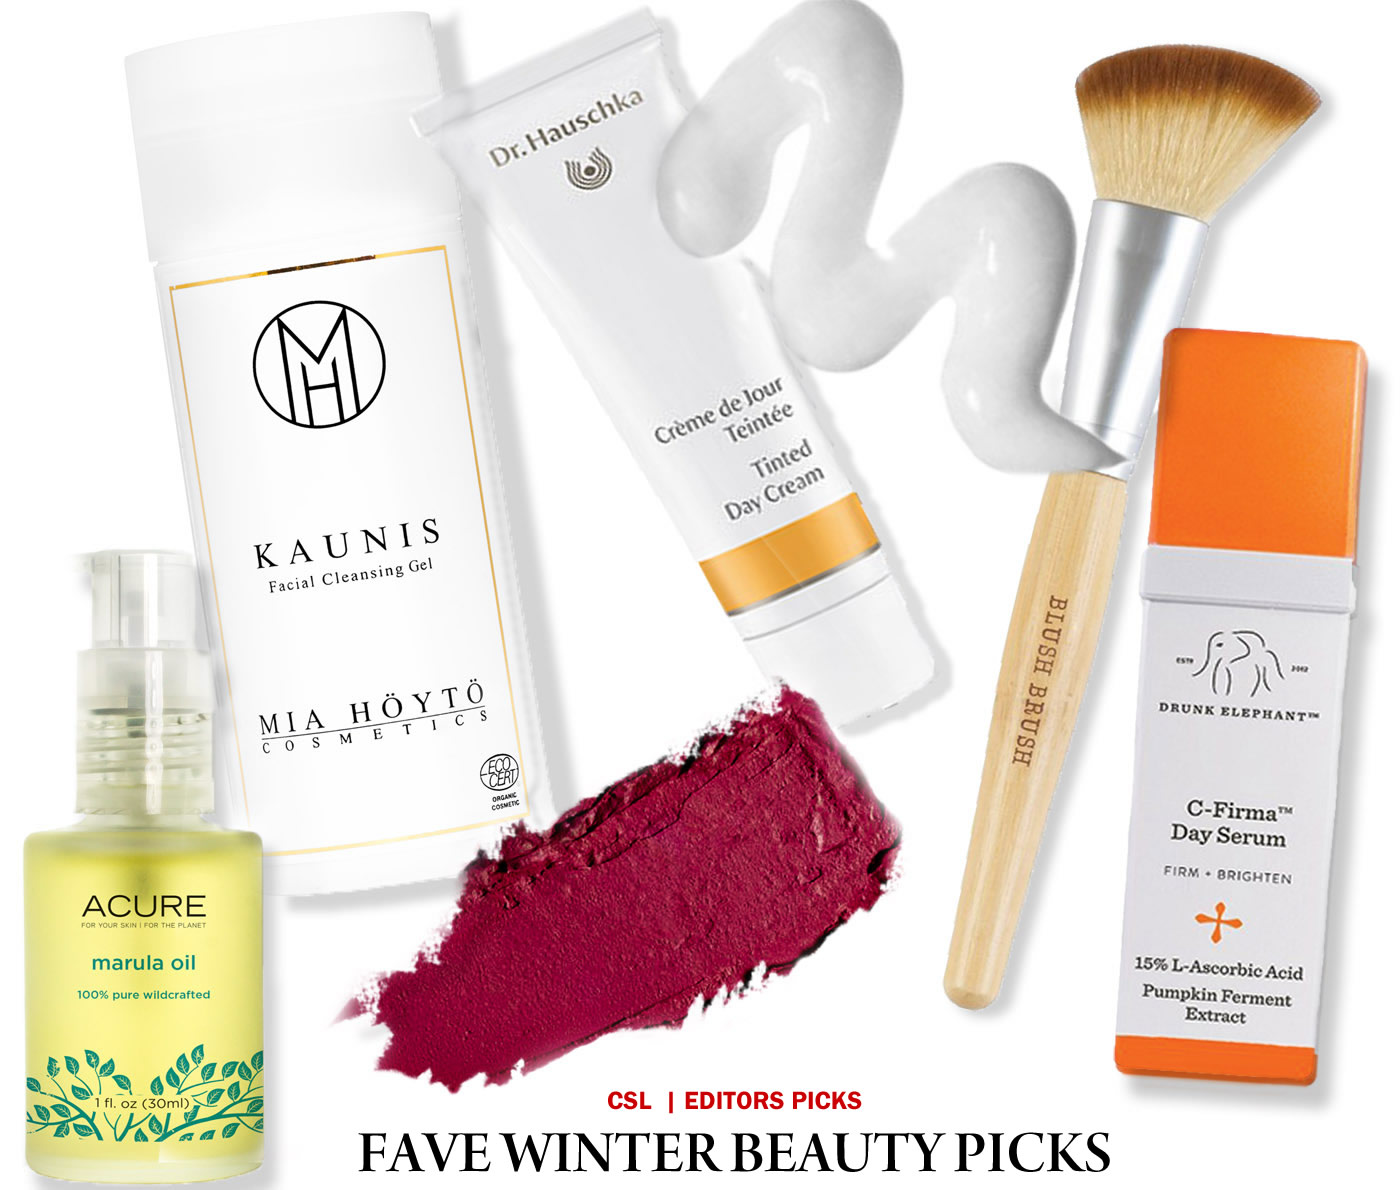 Editors Fave Amazing New Eco Beauty Products: Winter 2016/17